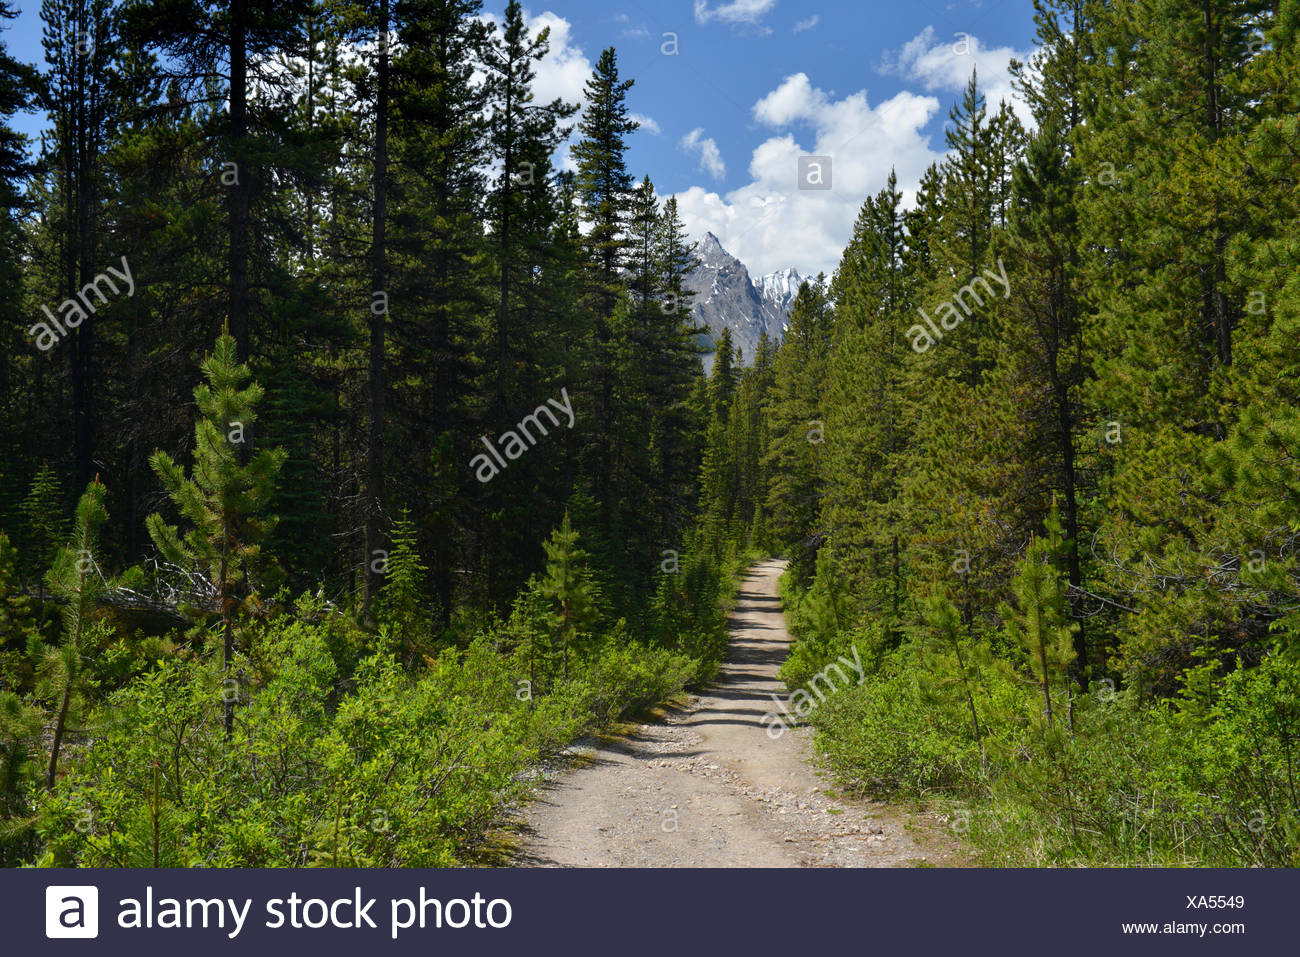 View from the path up to Bald Hills, Canadian Rockies - Stock Image